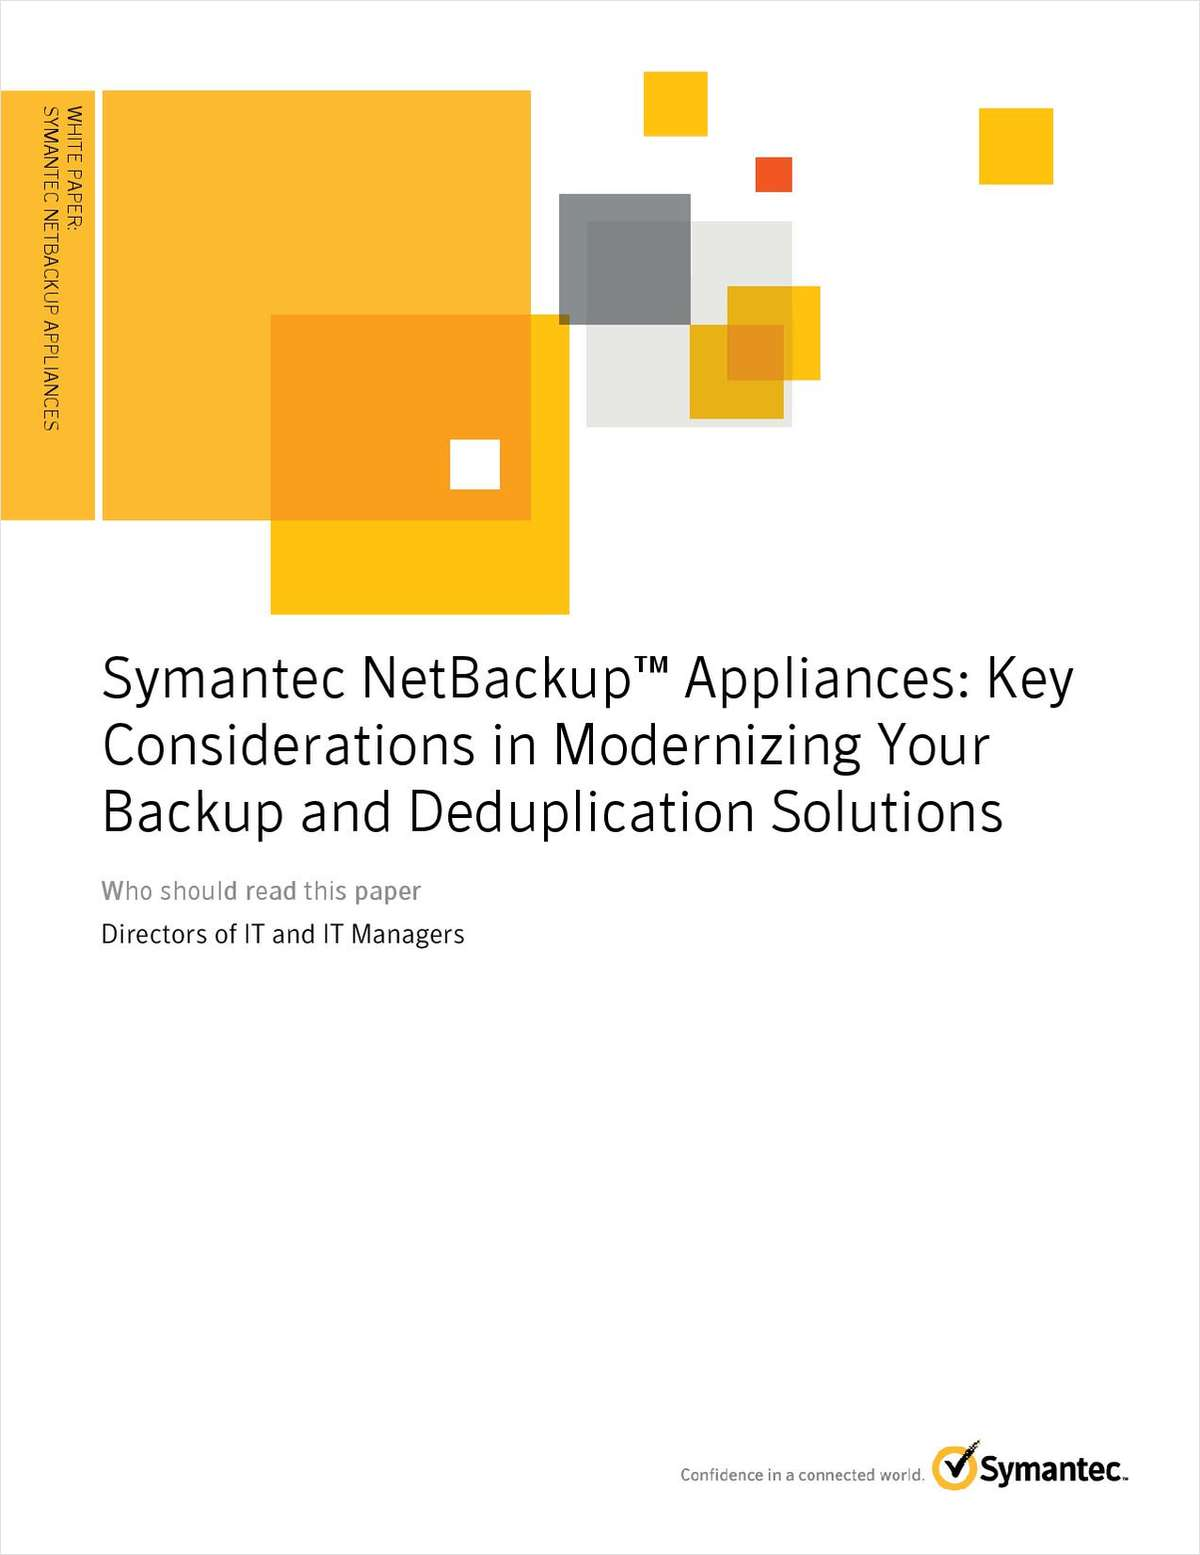 Symantec NetBackup™ Appliances: Key Considerations in Modernizing Your Backup and Deduplication Solutions